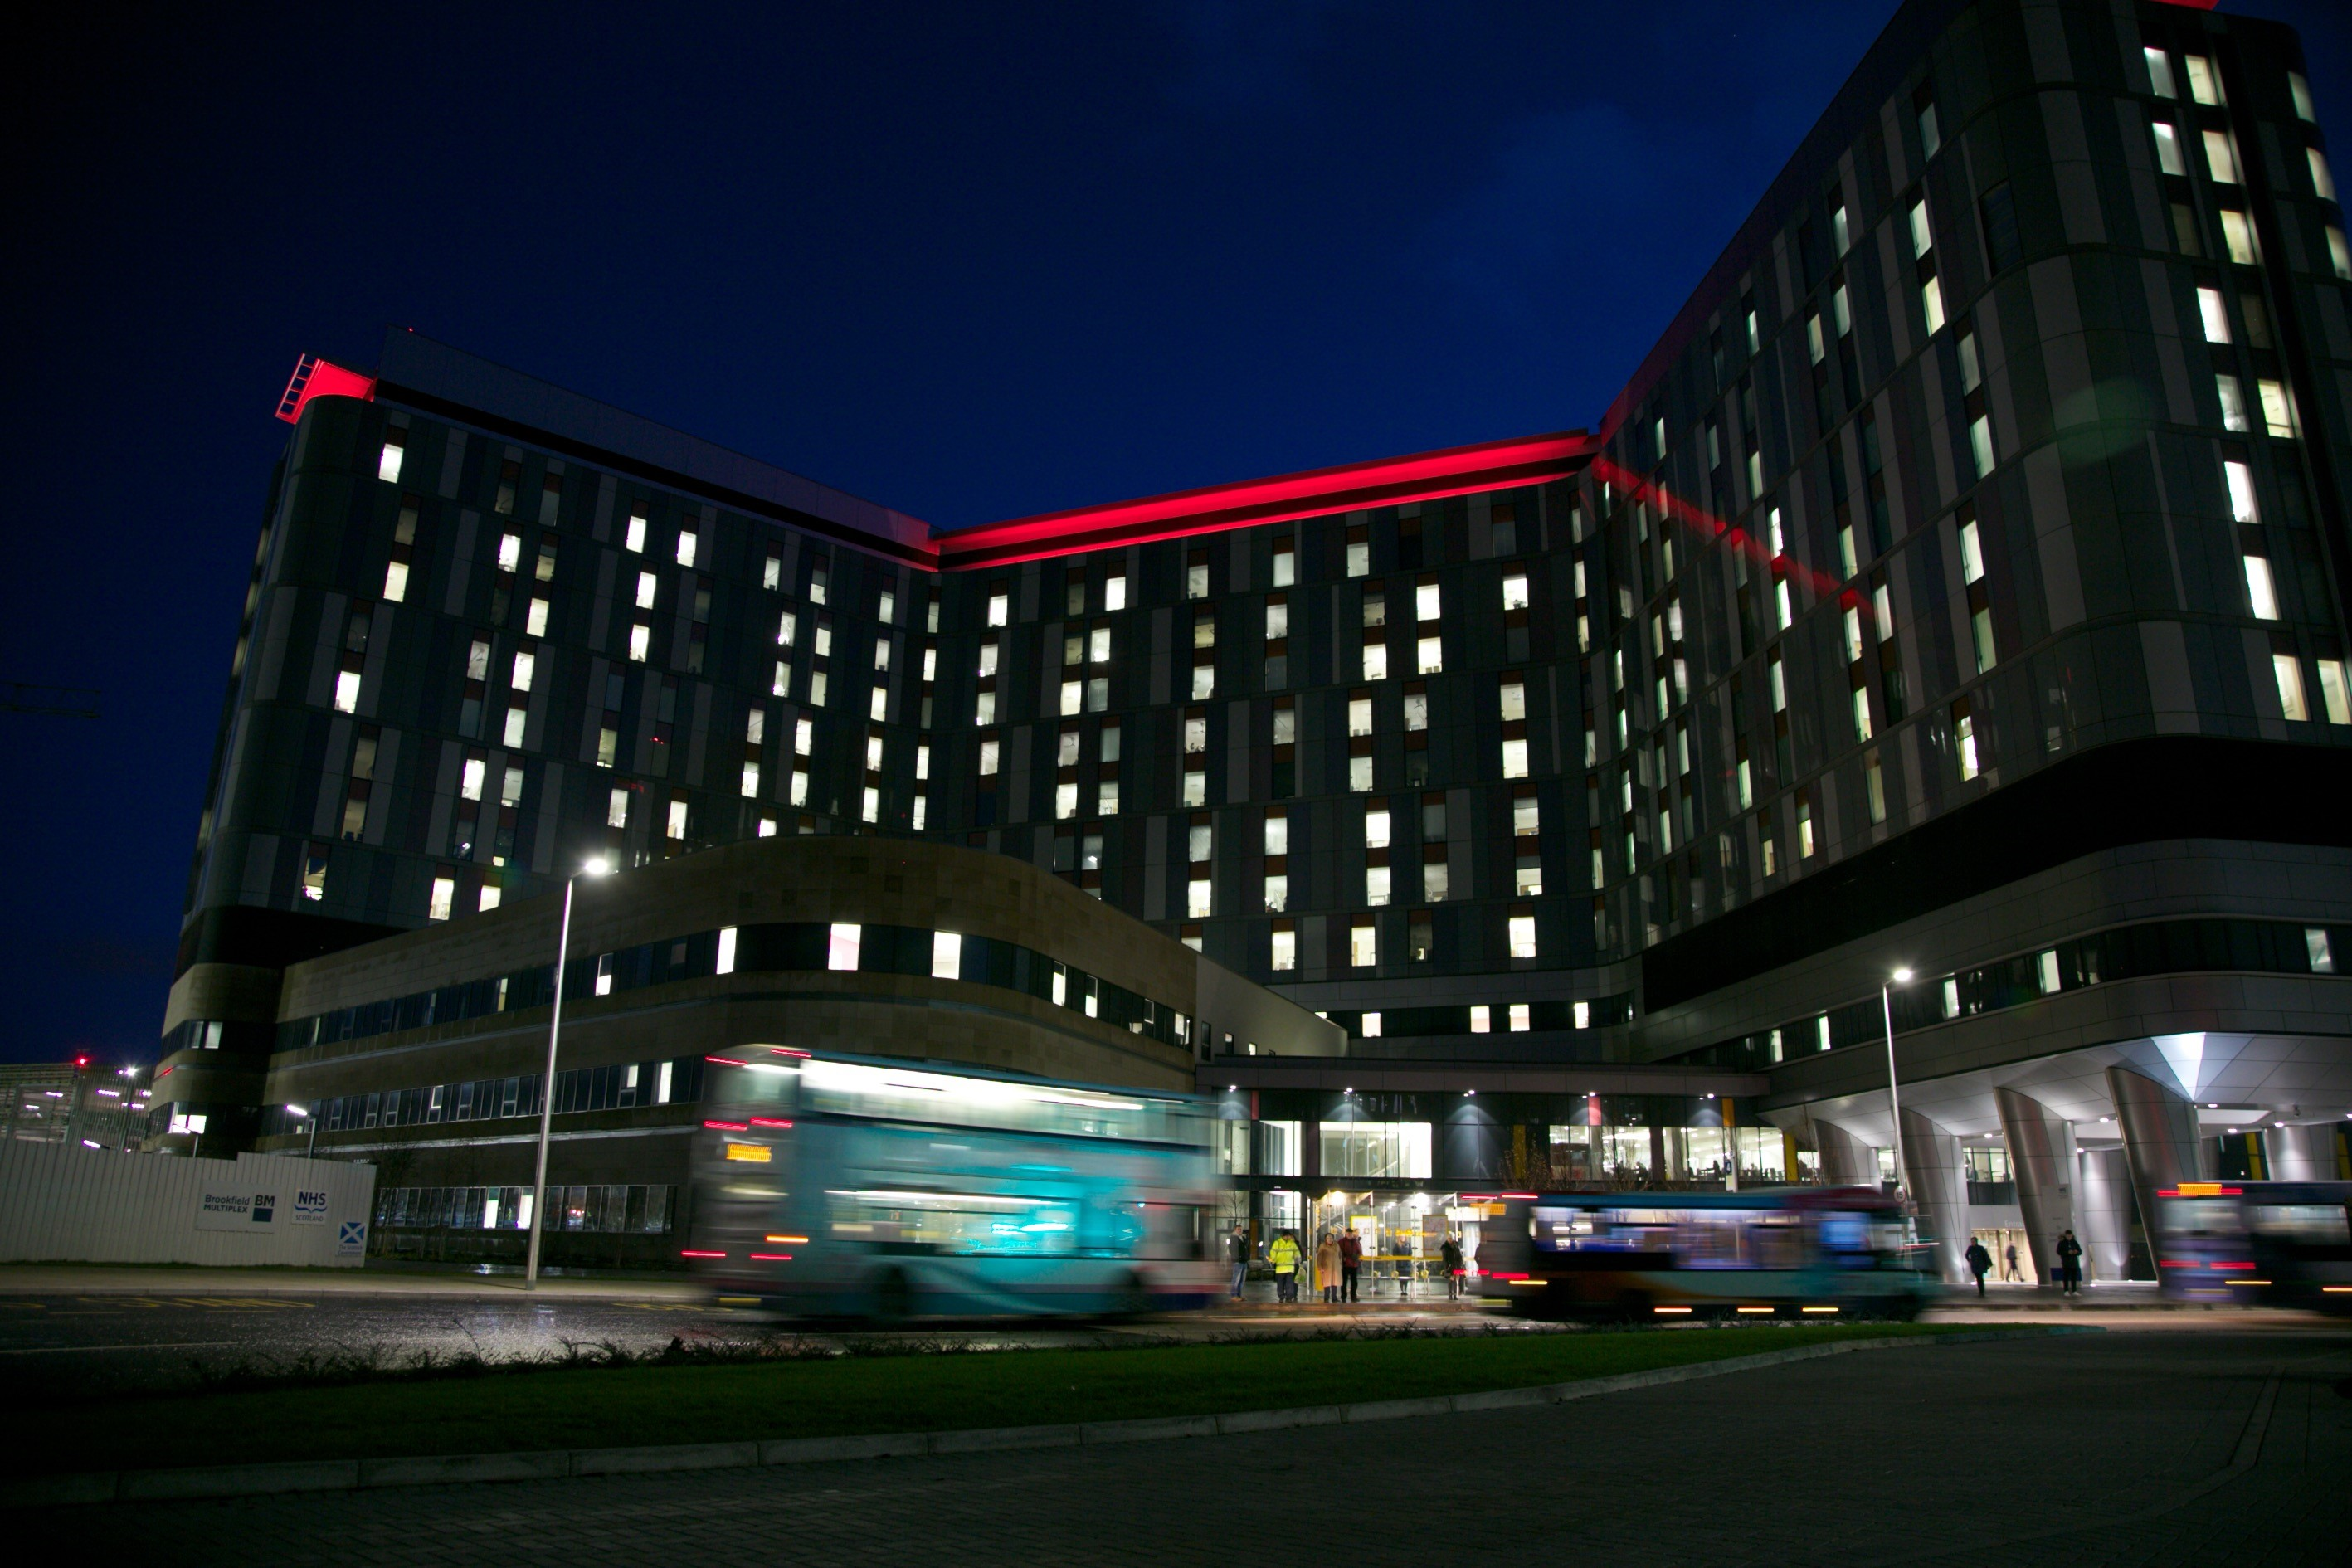 QEUH lit up red in recognition of World AIDS Day